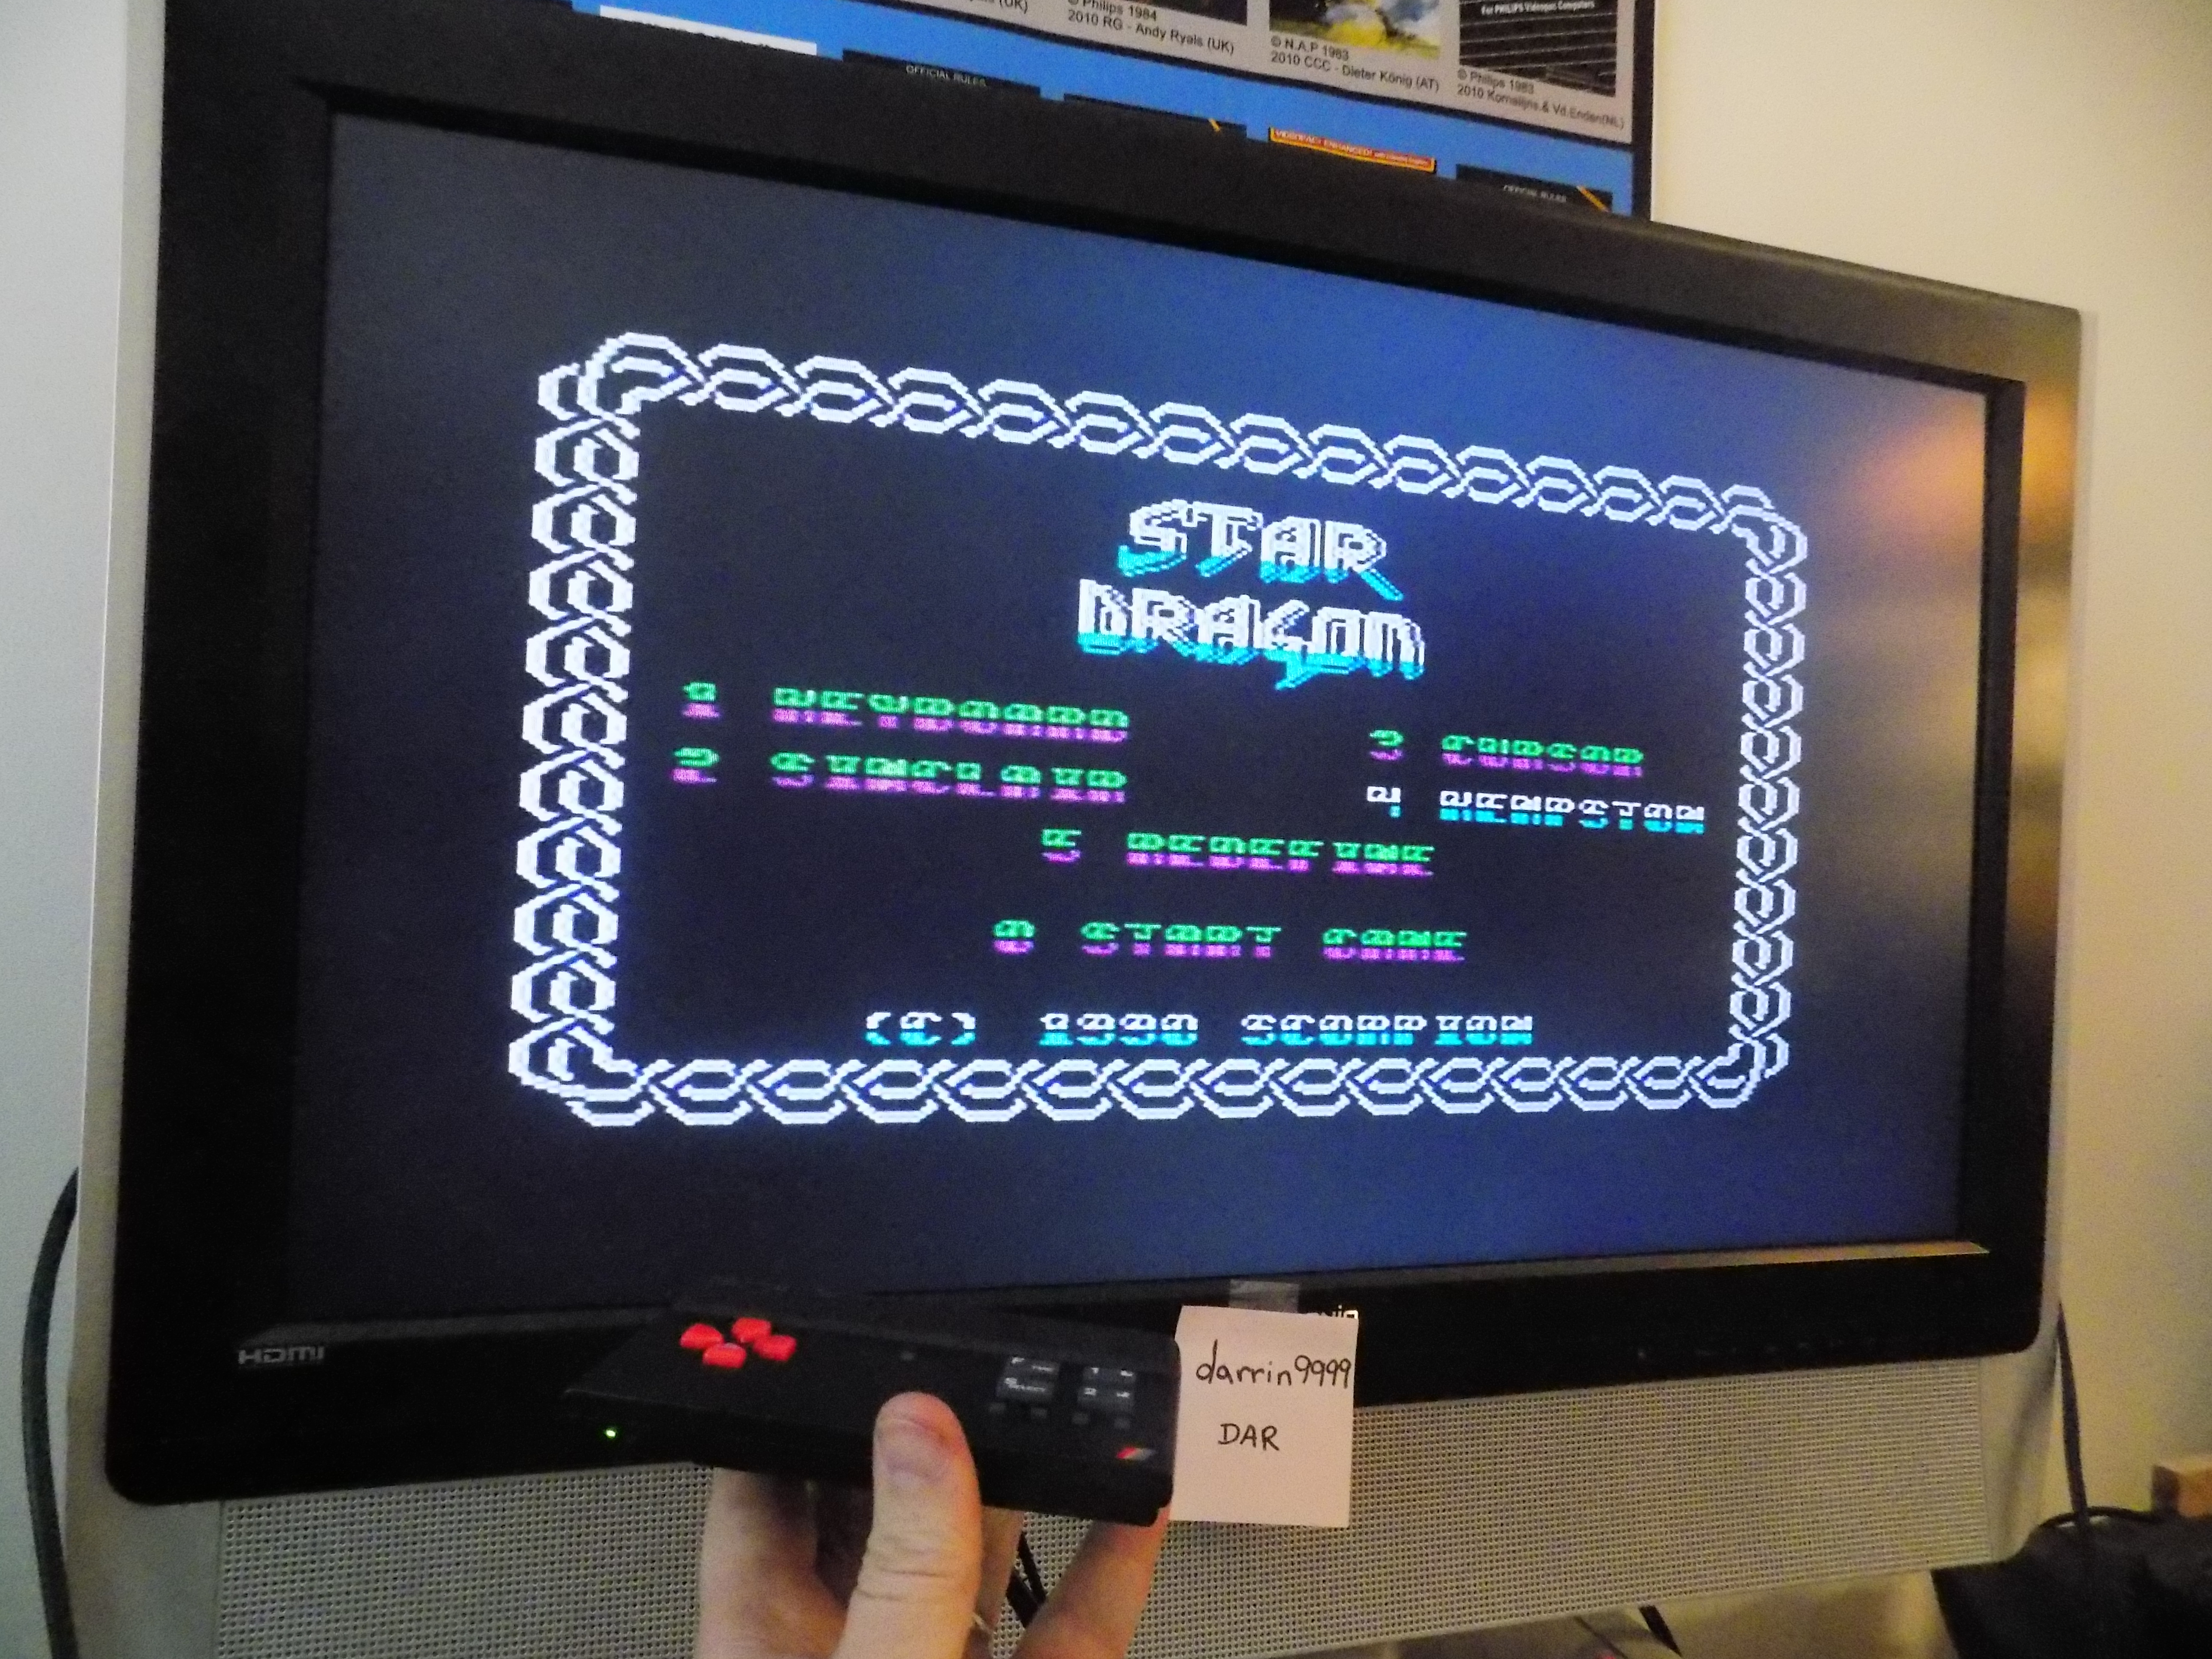 darrin9999: Star Dragon (ZX Spectrum Emulated) 20,056 points on 2017-02-26 22:20:03